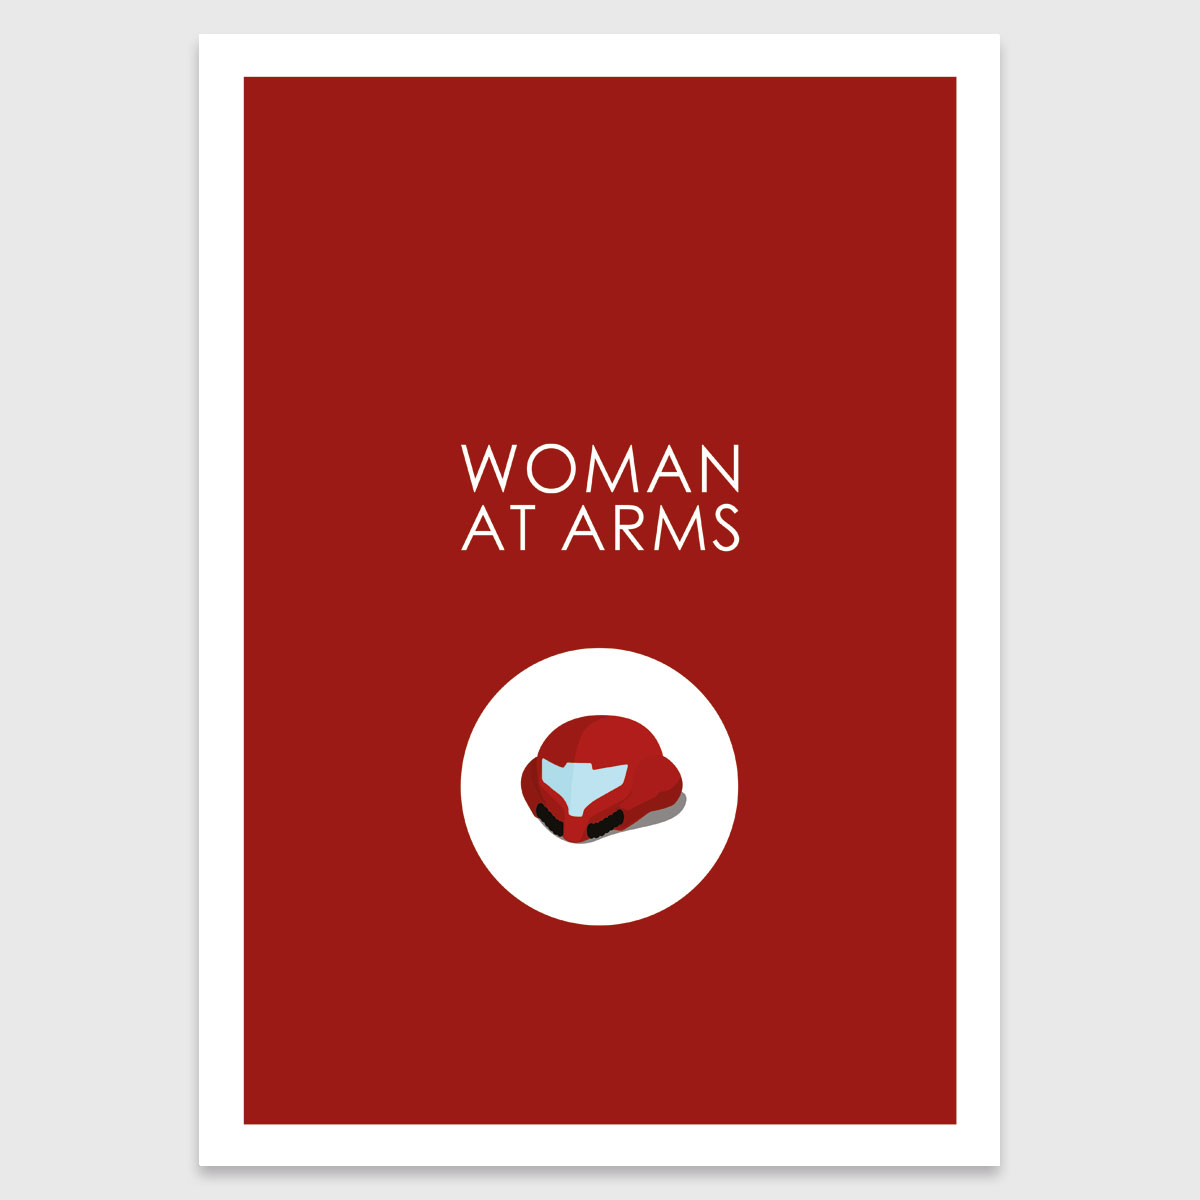 Alternative photo: Retro print: Woman at arms